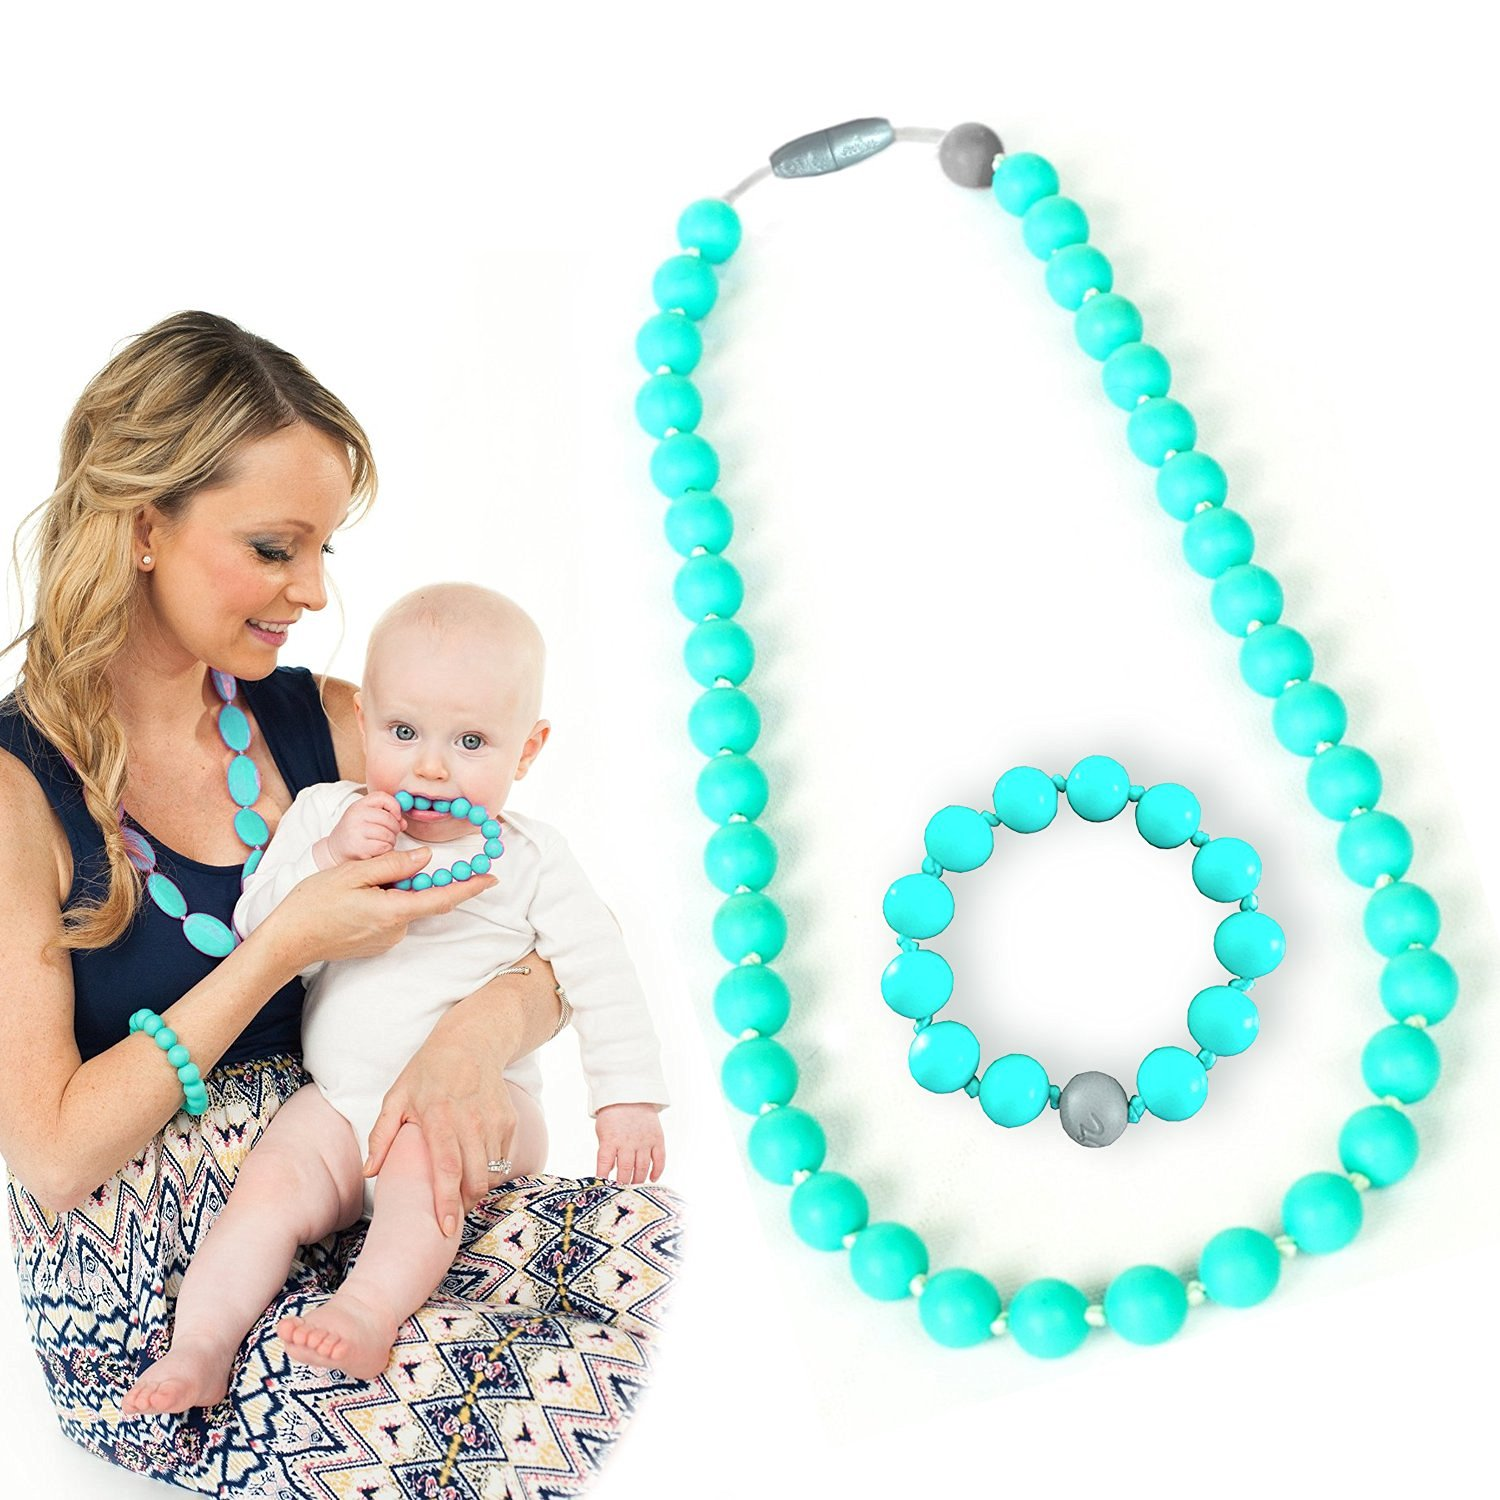 Maven Gifts: Itzy Ritzy Teething Happens Silicone Jewelry Baby Teething Necklace Bead, Turquoise with Itzy Ritzy Teething Happens Silicone Jewelry Baby Teething Bracelet Bead, Turquoise